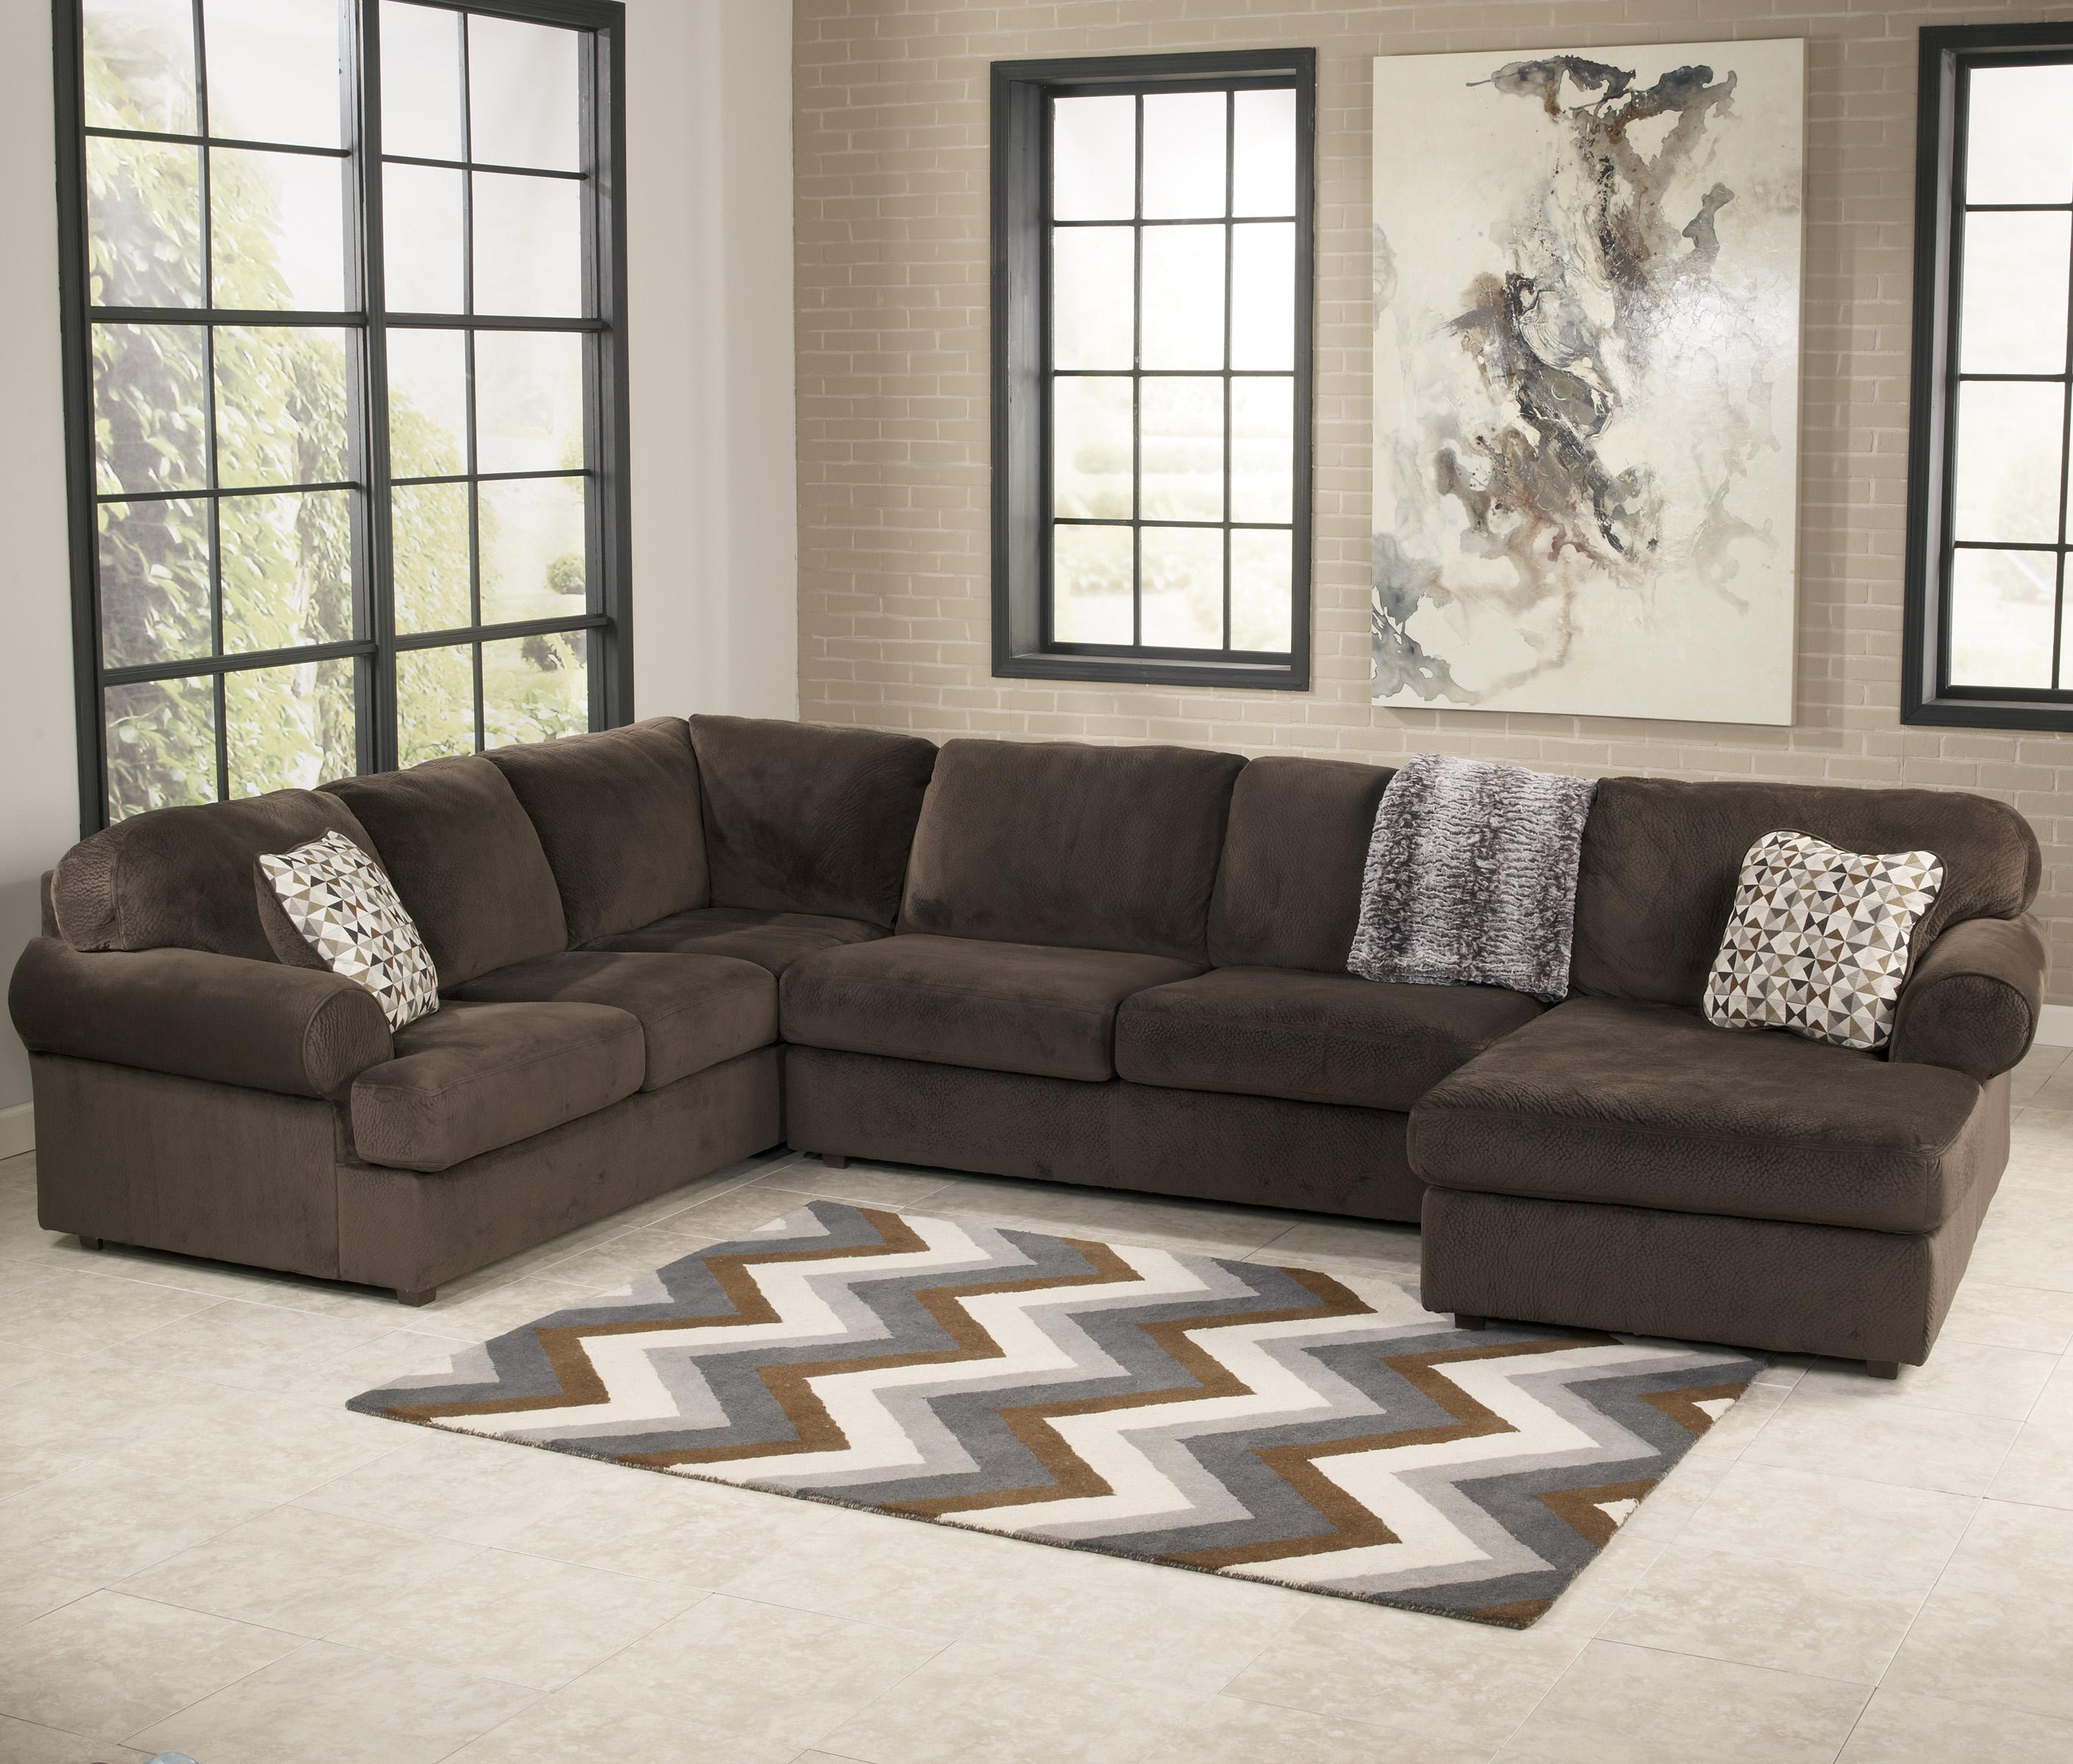 Casual Sectional Sofa With Right Chaise By Signature Design By Ashley Wolf And Gardiner Wolf